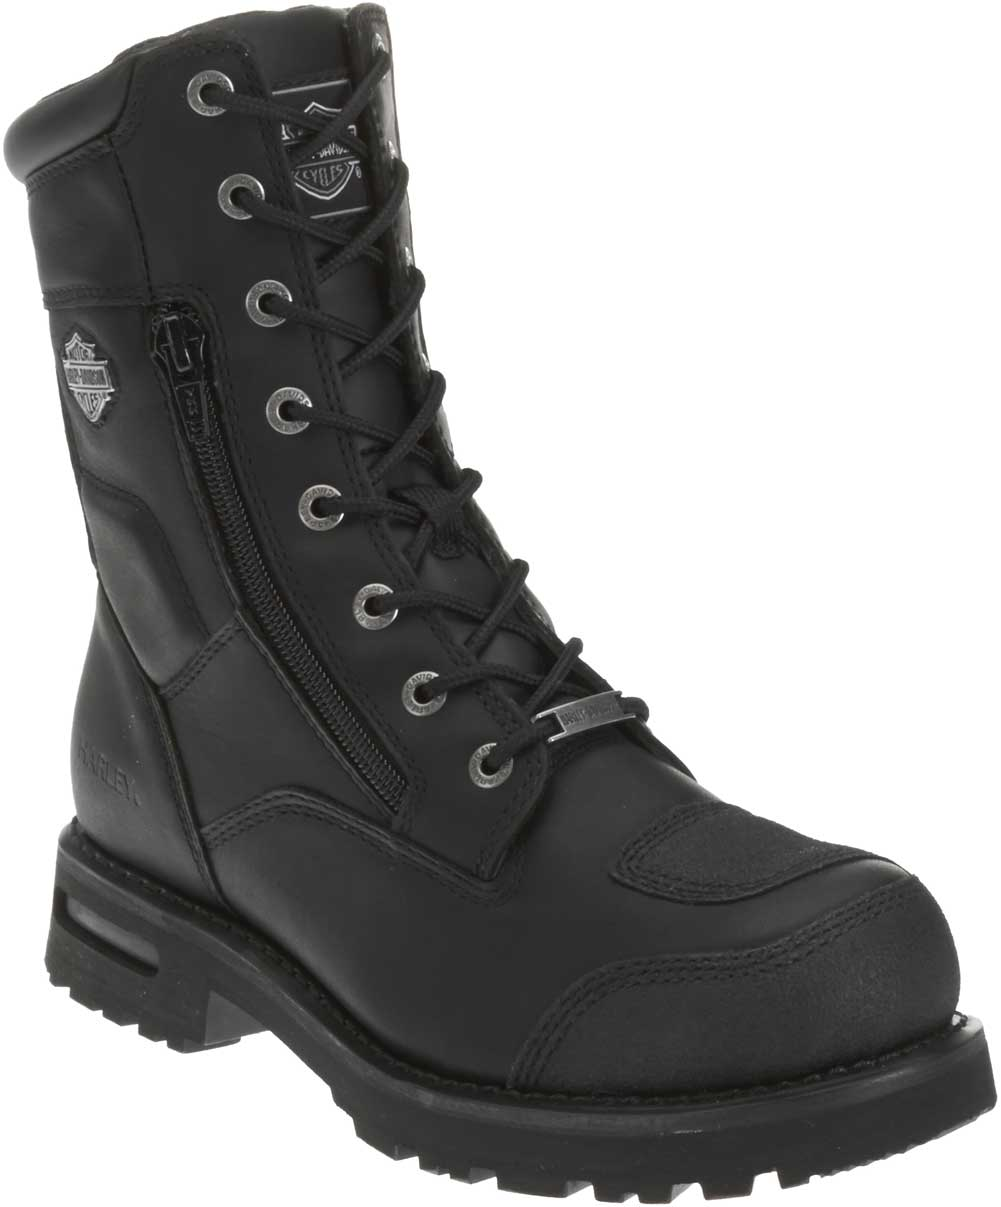 HARLEY-DAVIDSON Mens Richton 8-Inch Black Leather Motorcycle Boots D93511